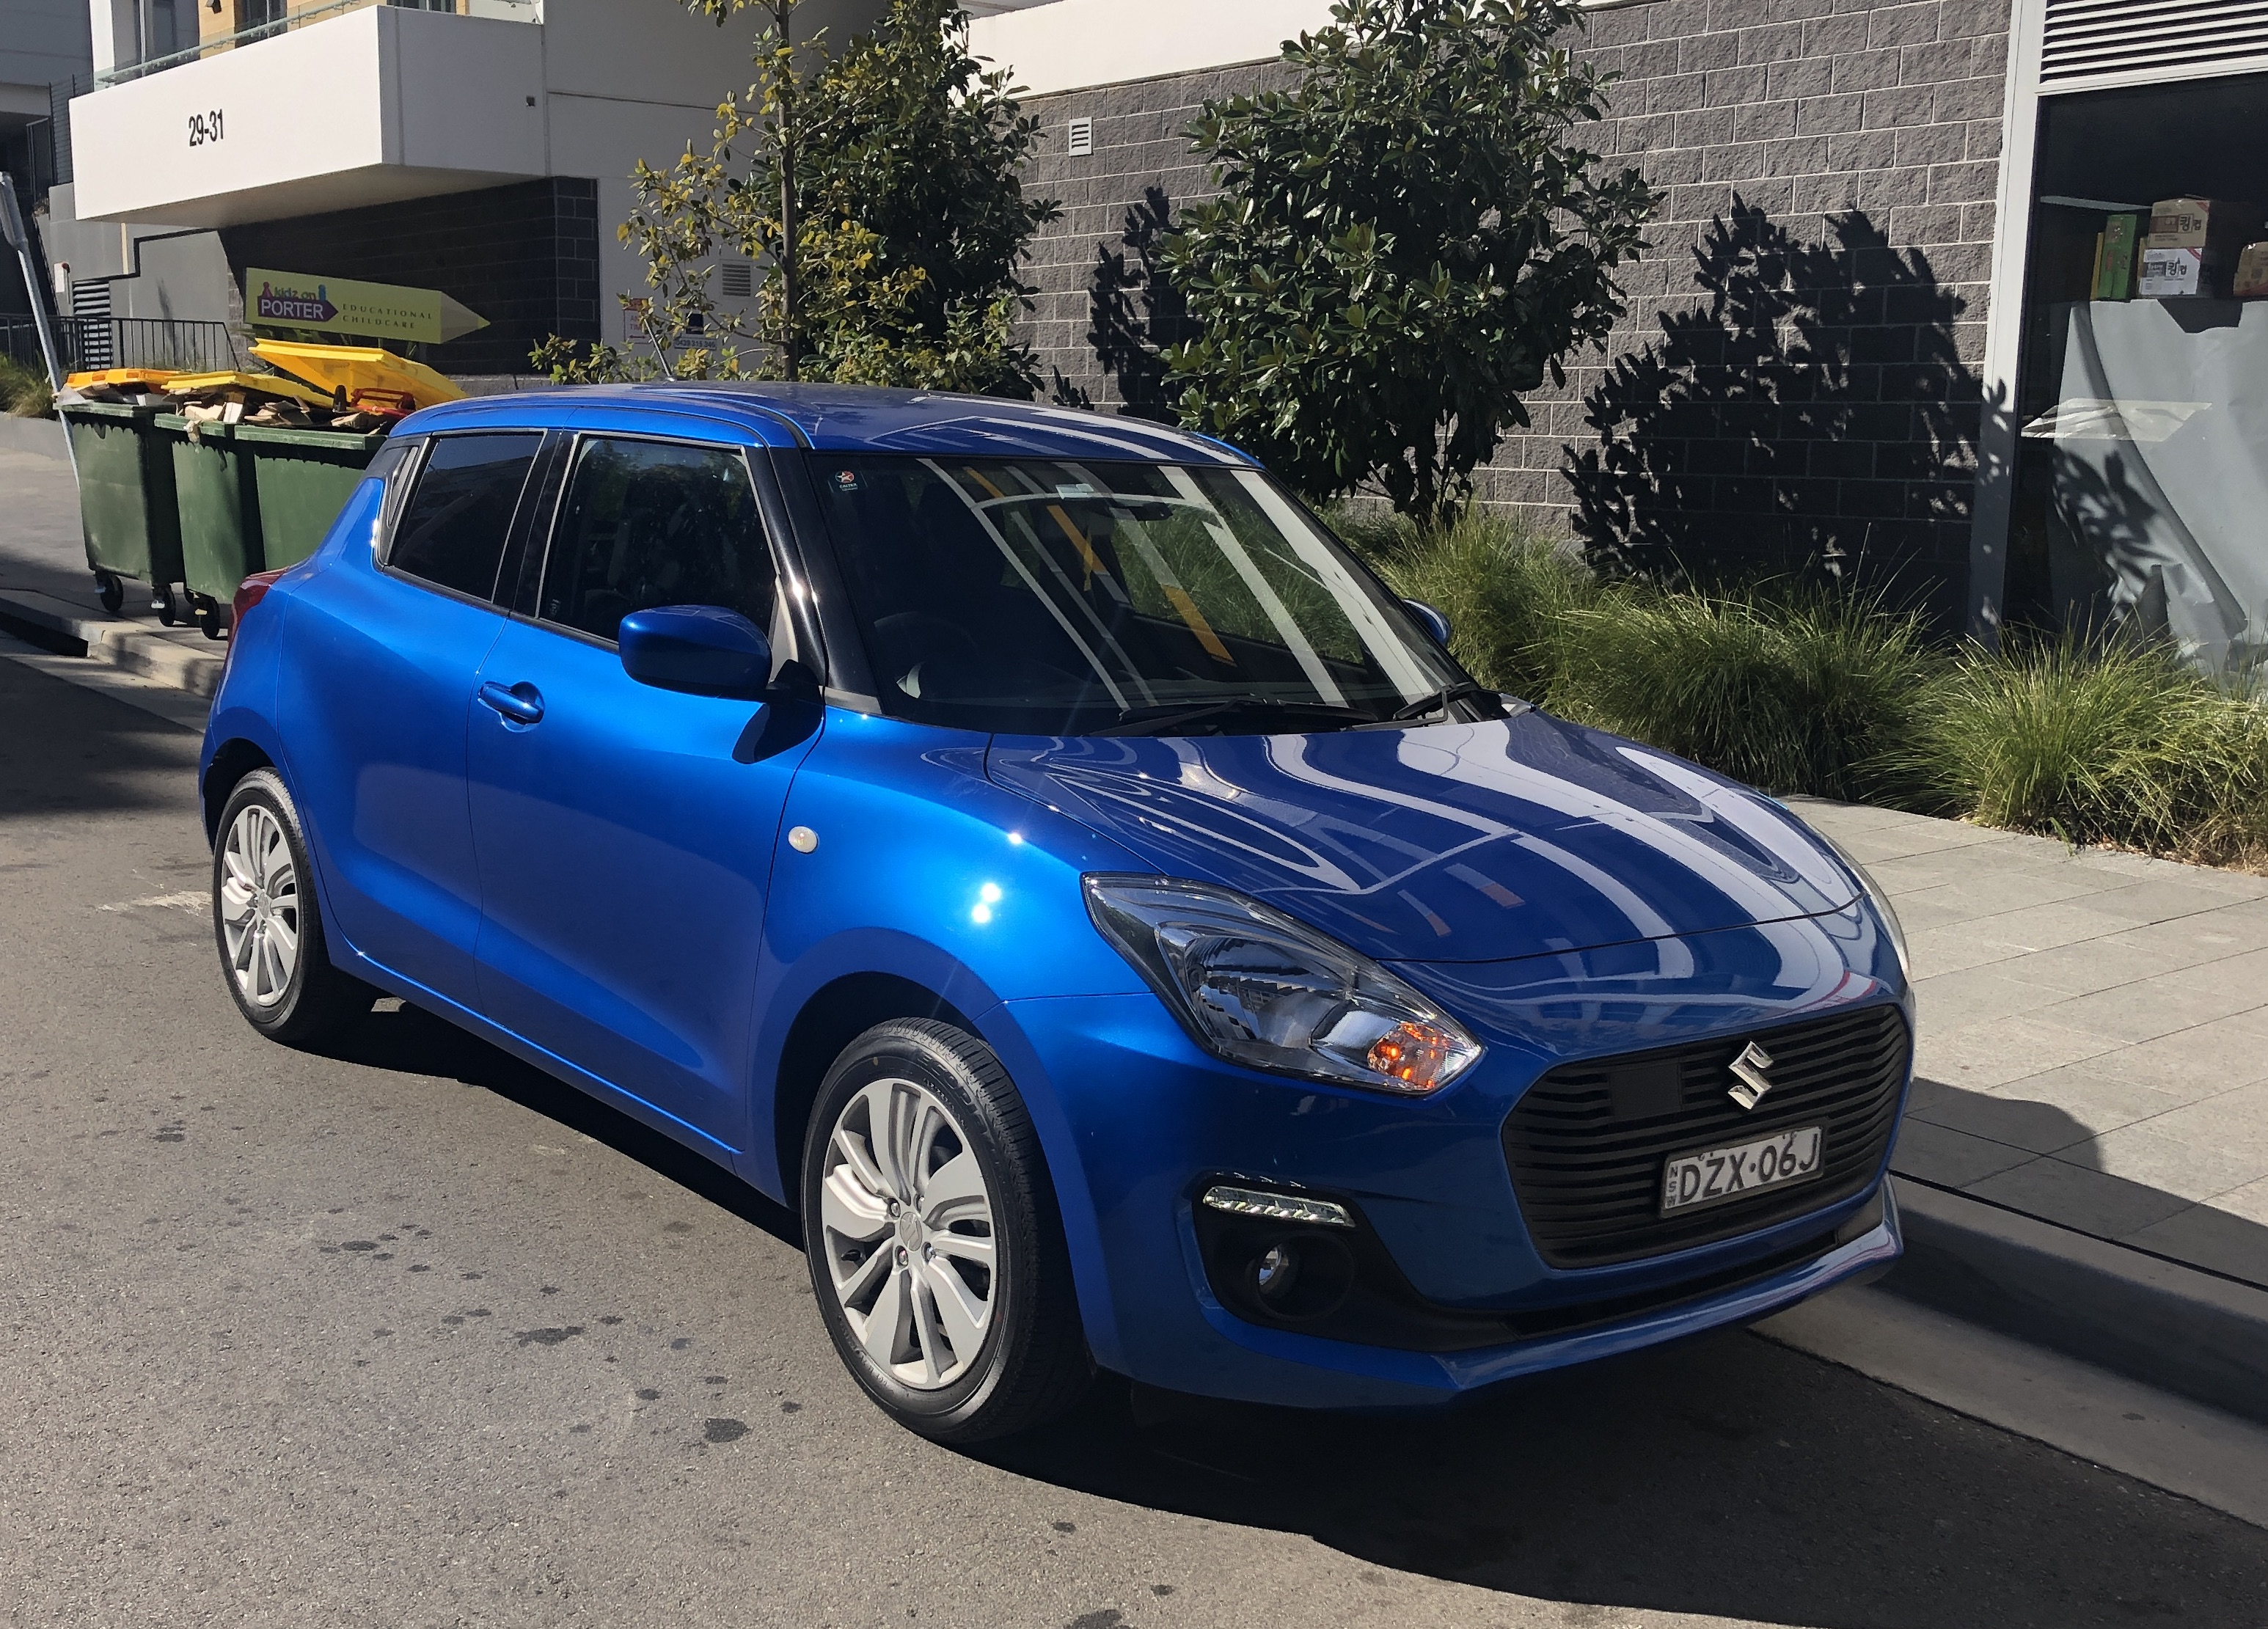 Picture of Samantha's 2019 Suzuki Swift